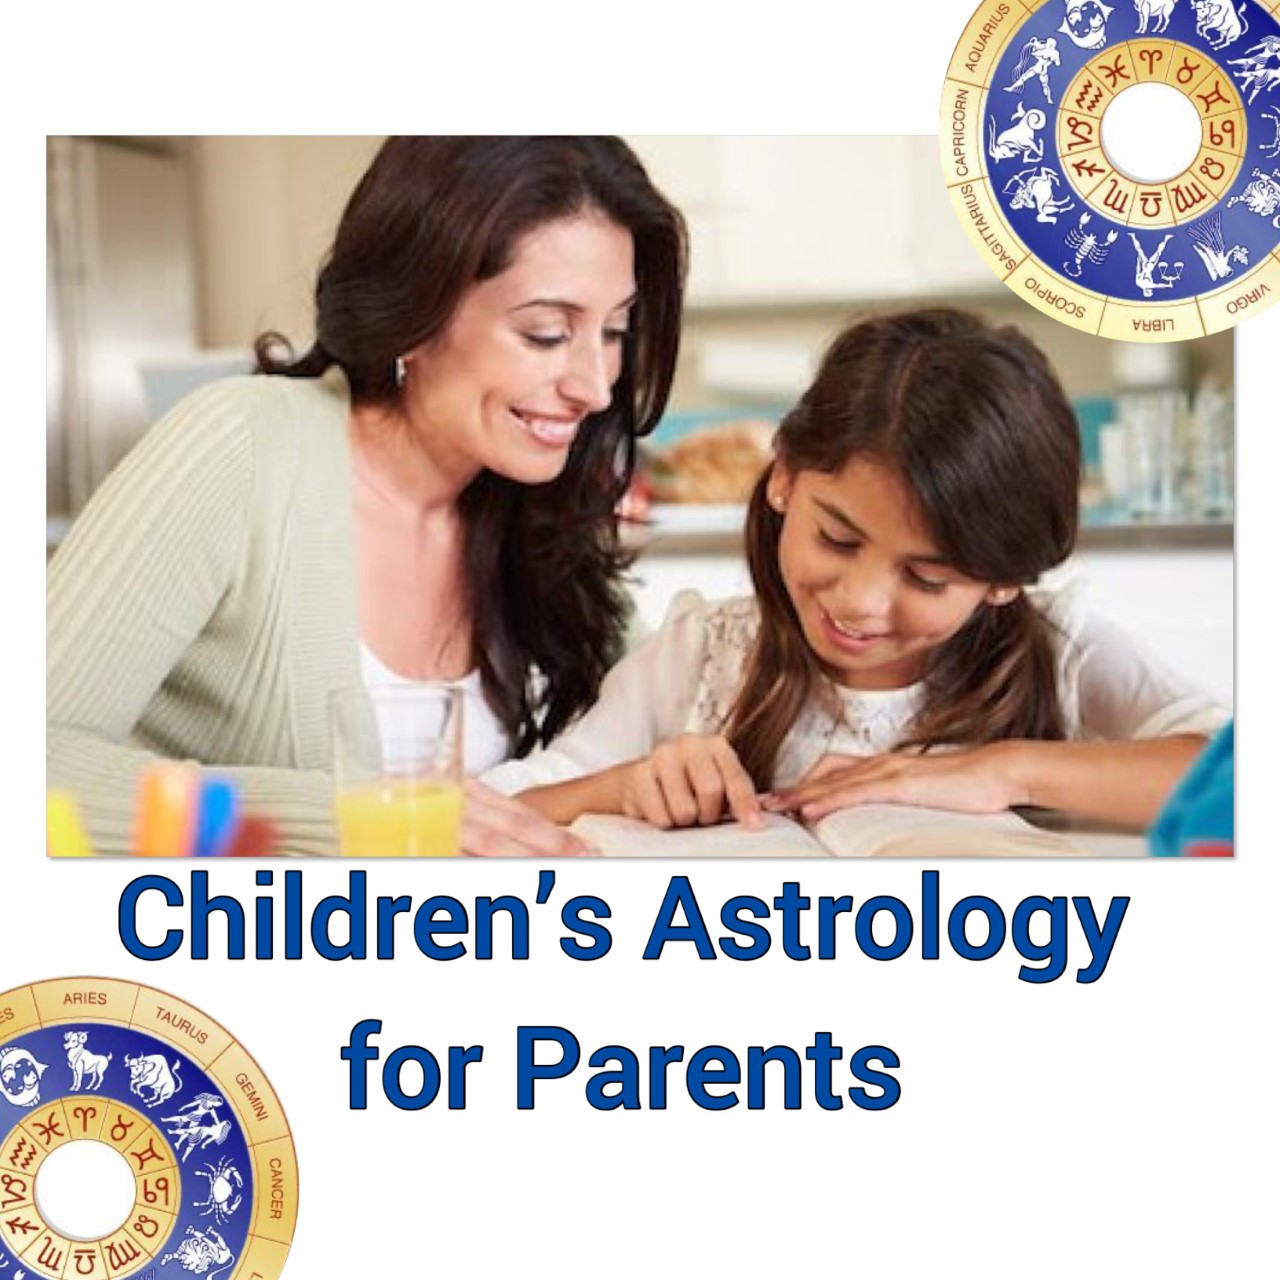 Childrens Astrology for Parents by Priya Kapil